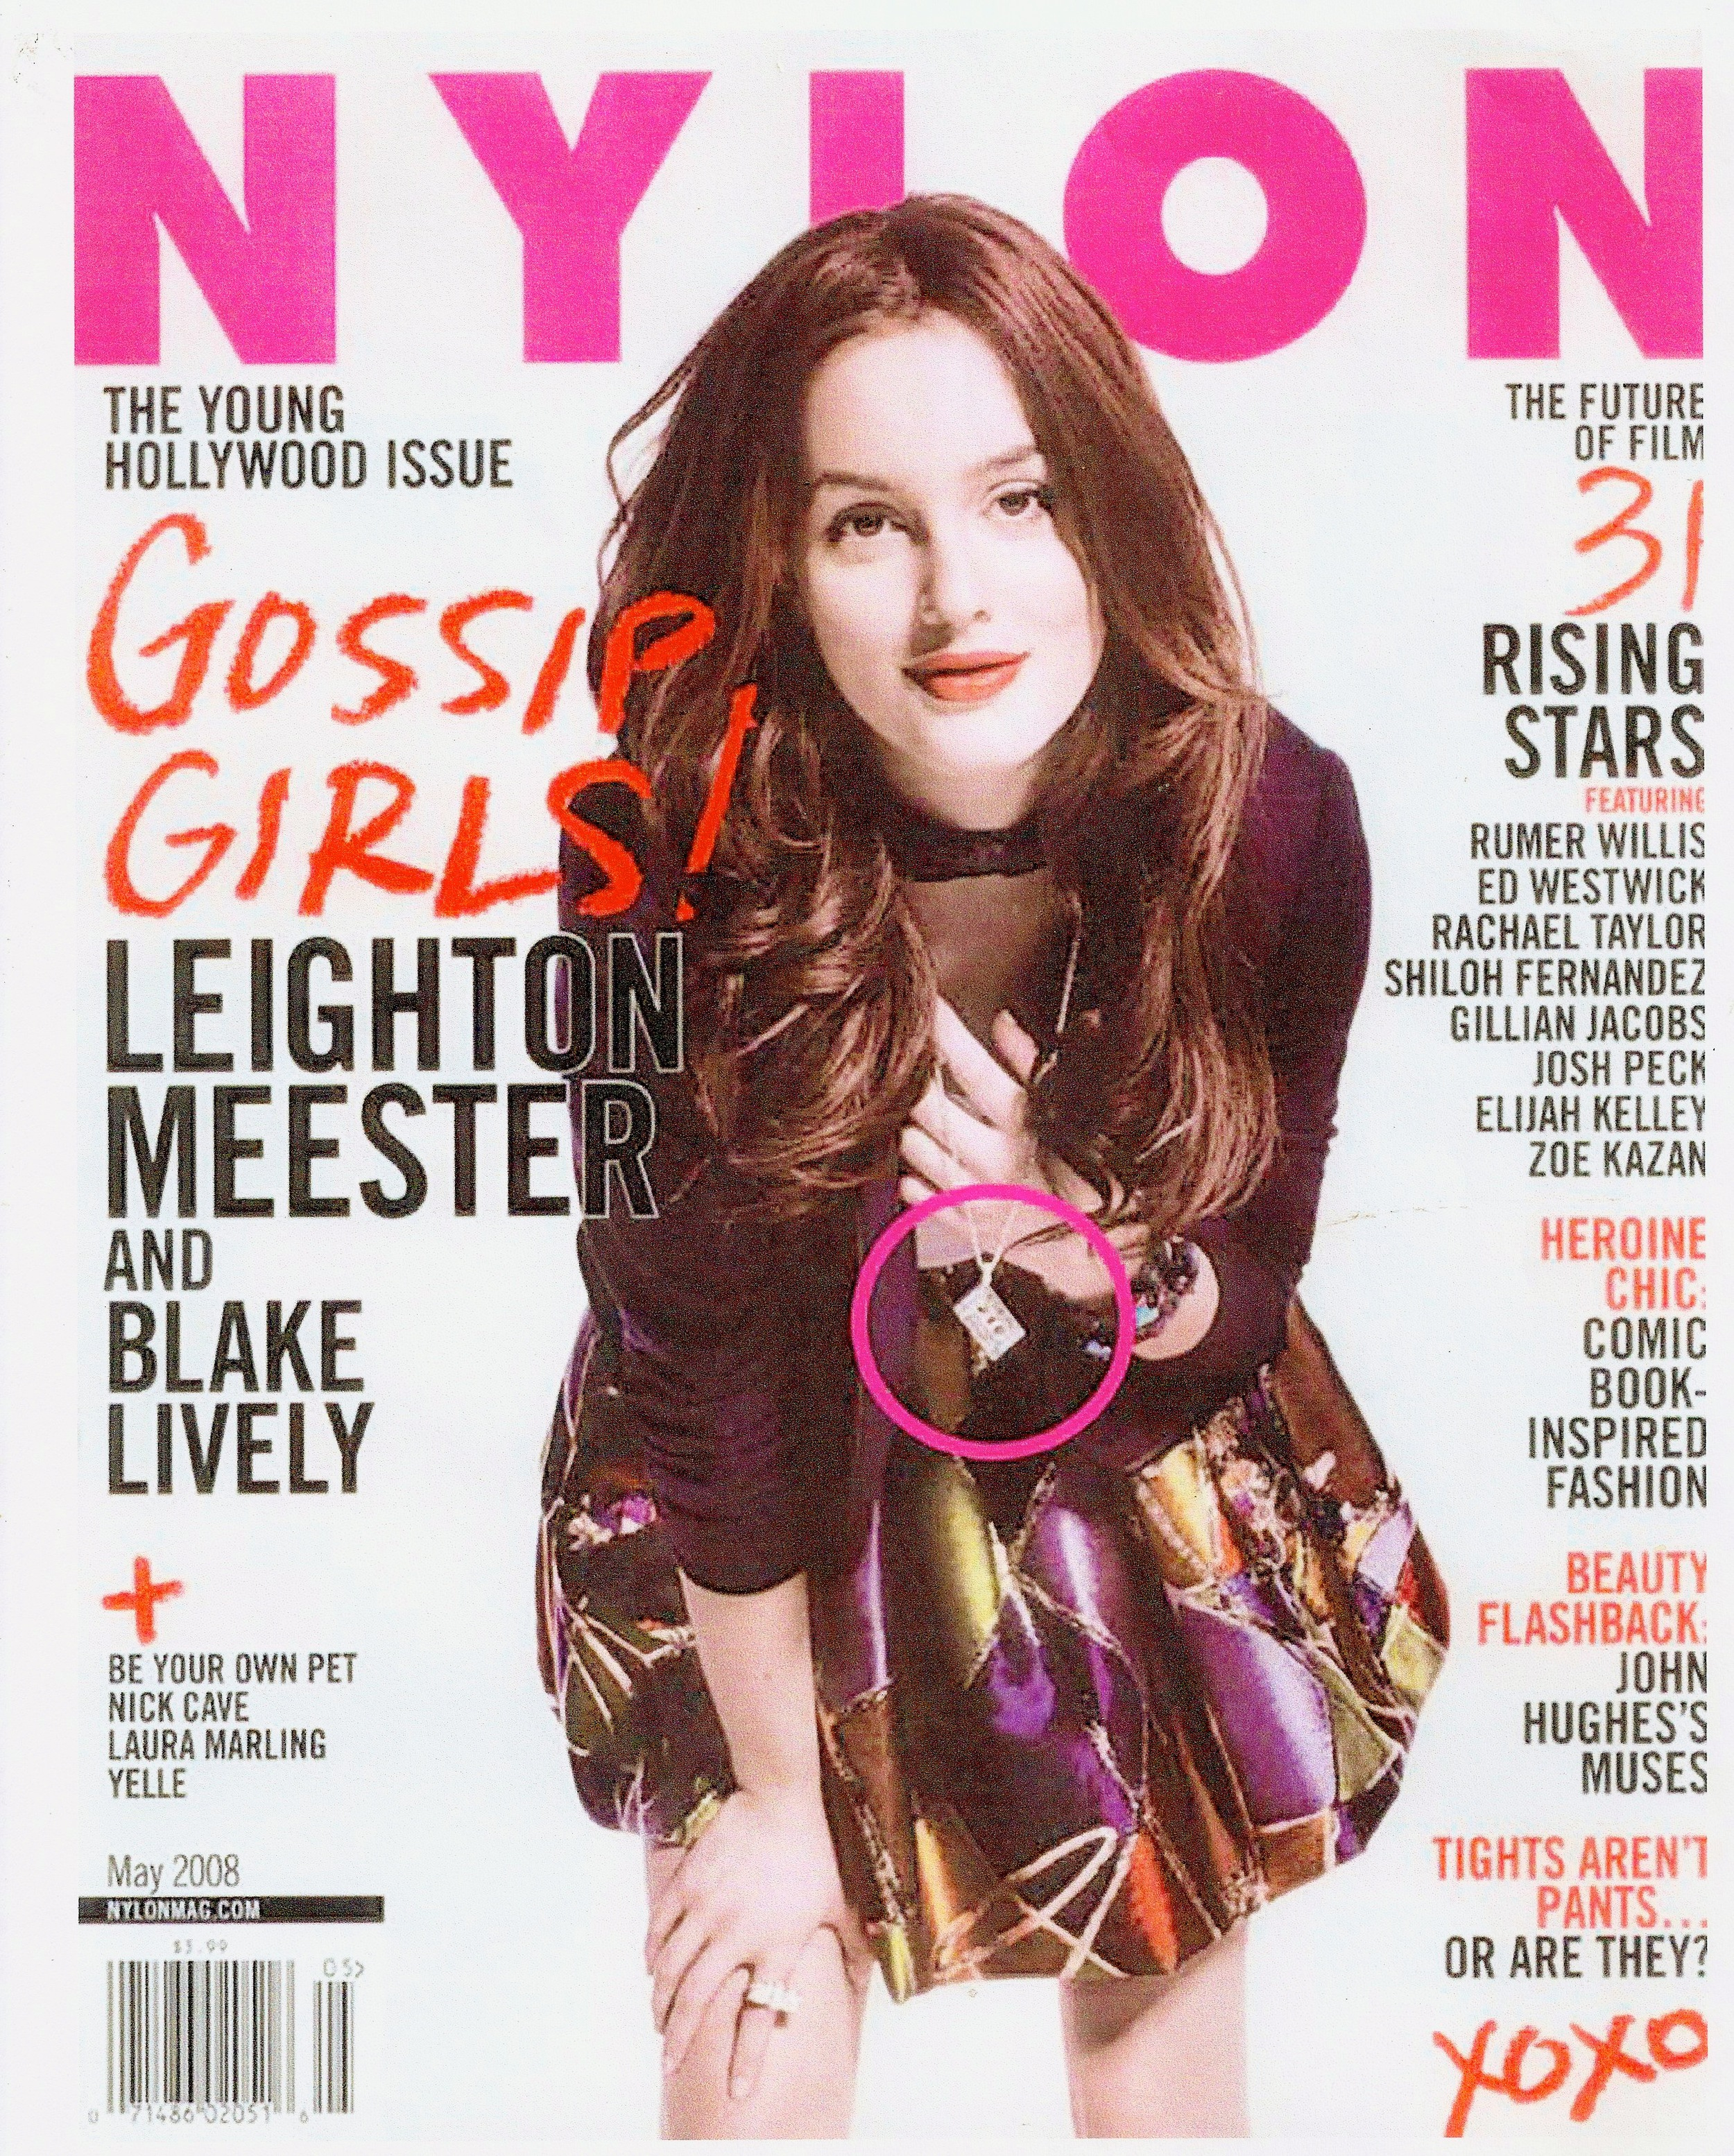 Nylon Magazine with Leighton Meester wearing Nylon Jewelry